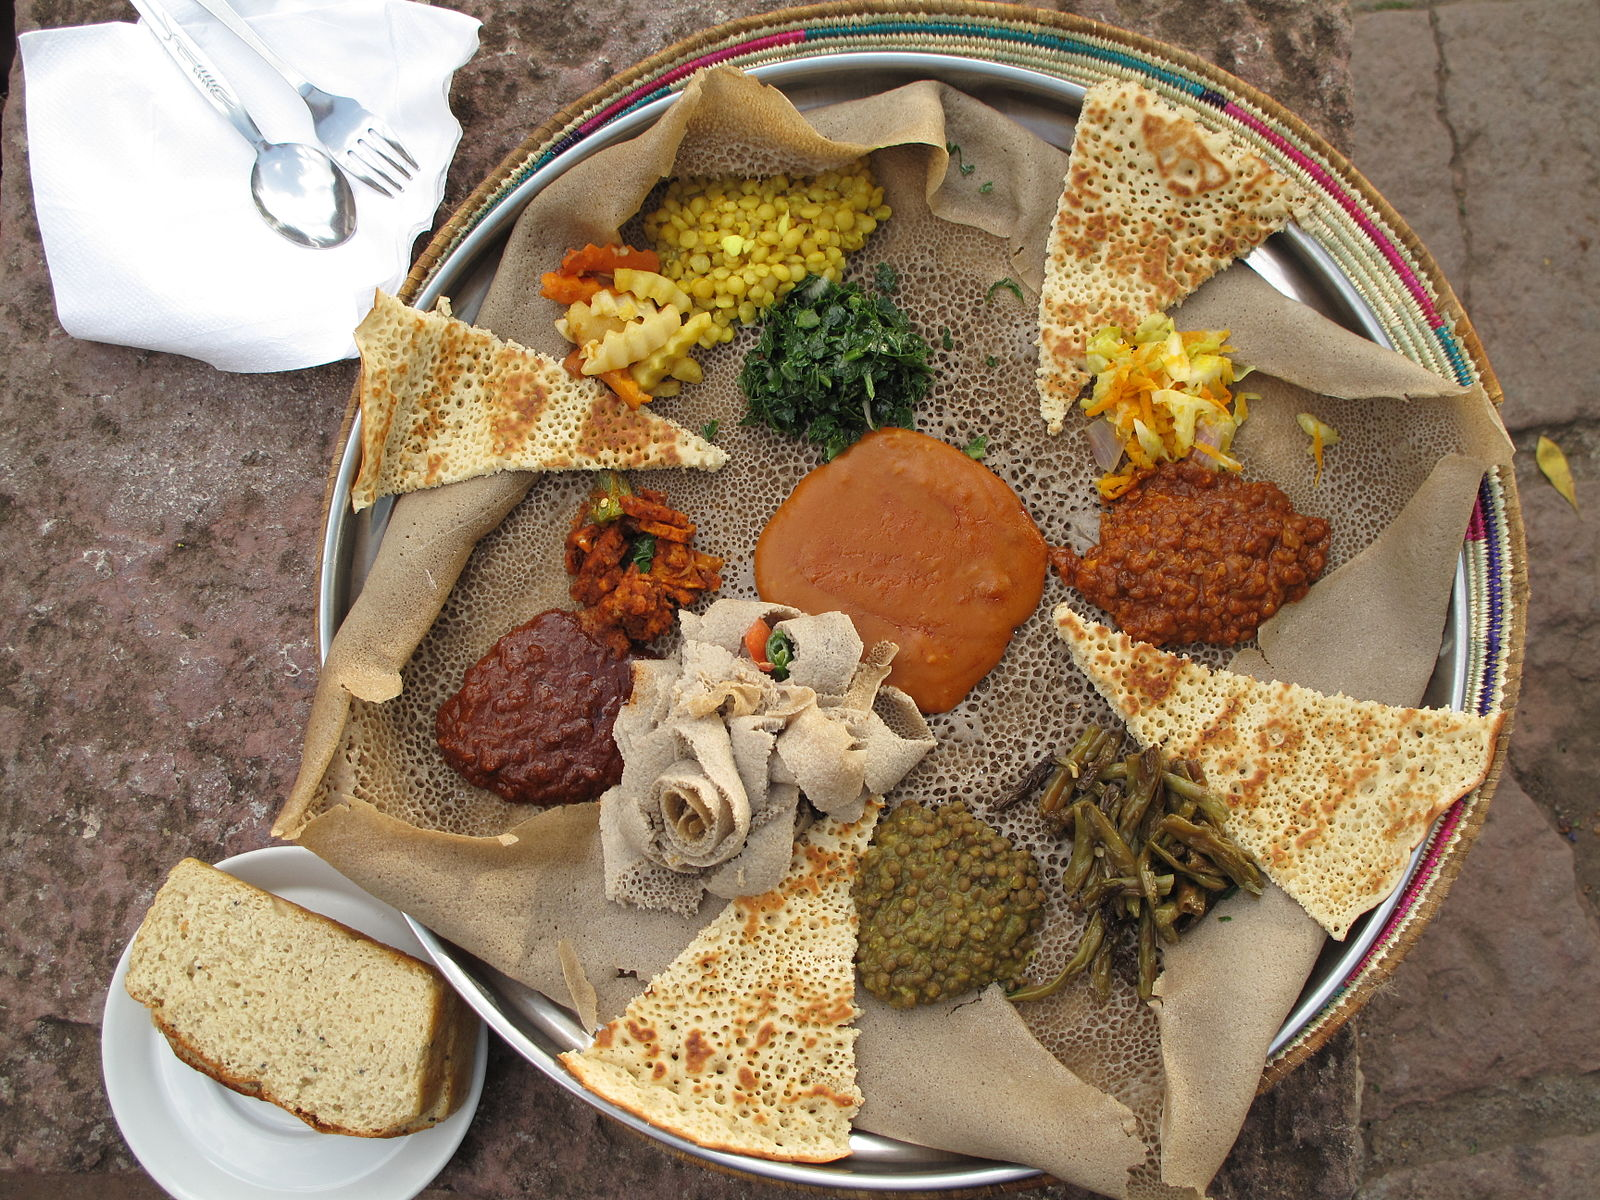 A typical Ethiopian meal during the Easter fasting period. Photo by Maurice Chédel.